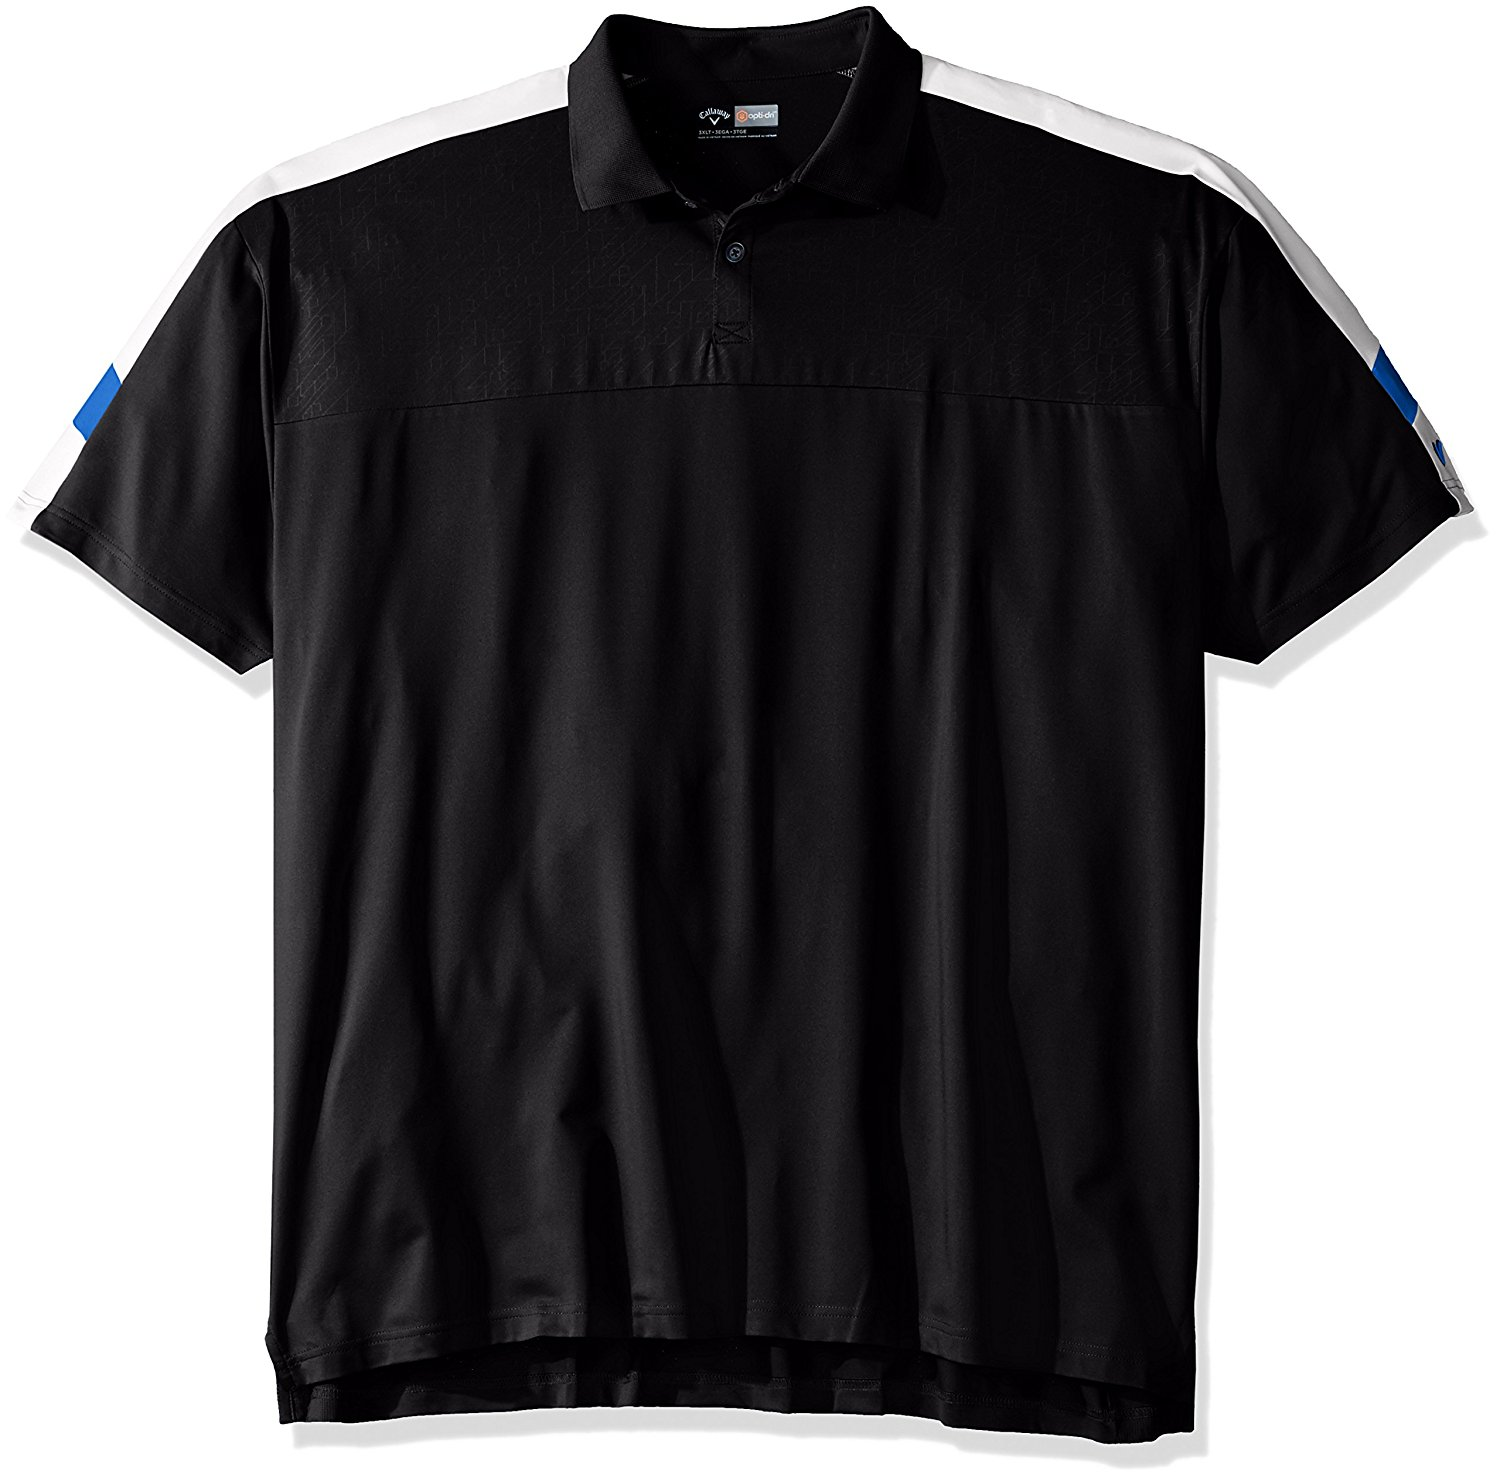 Callaway Men's Big & Tall Golf Performance Short Sleeve Embossed Three Color Blocked Polo Shirt